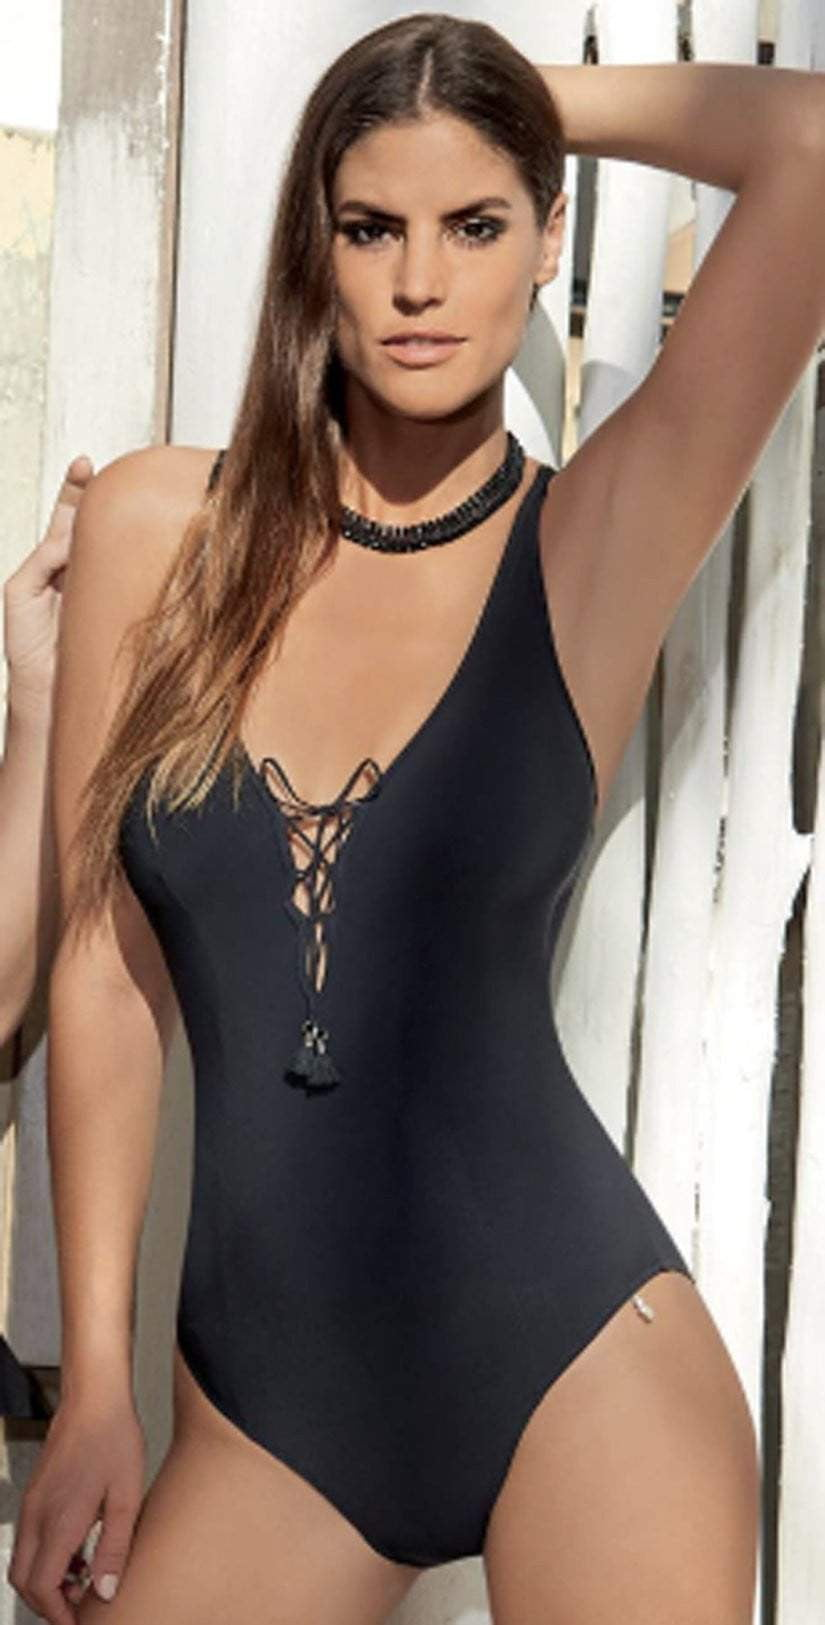 Opera Swim Tender Secret One-Piece Swimsuit in Black 62668-5: